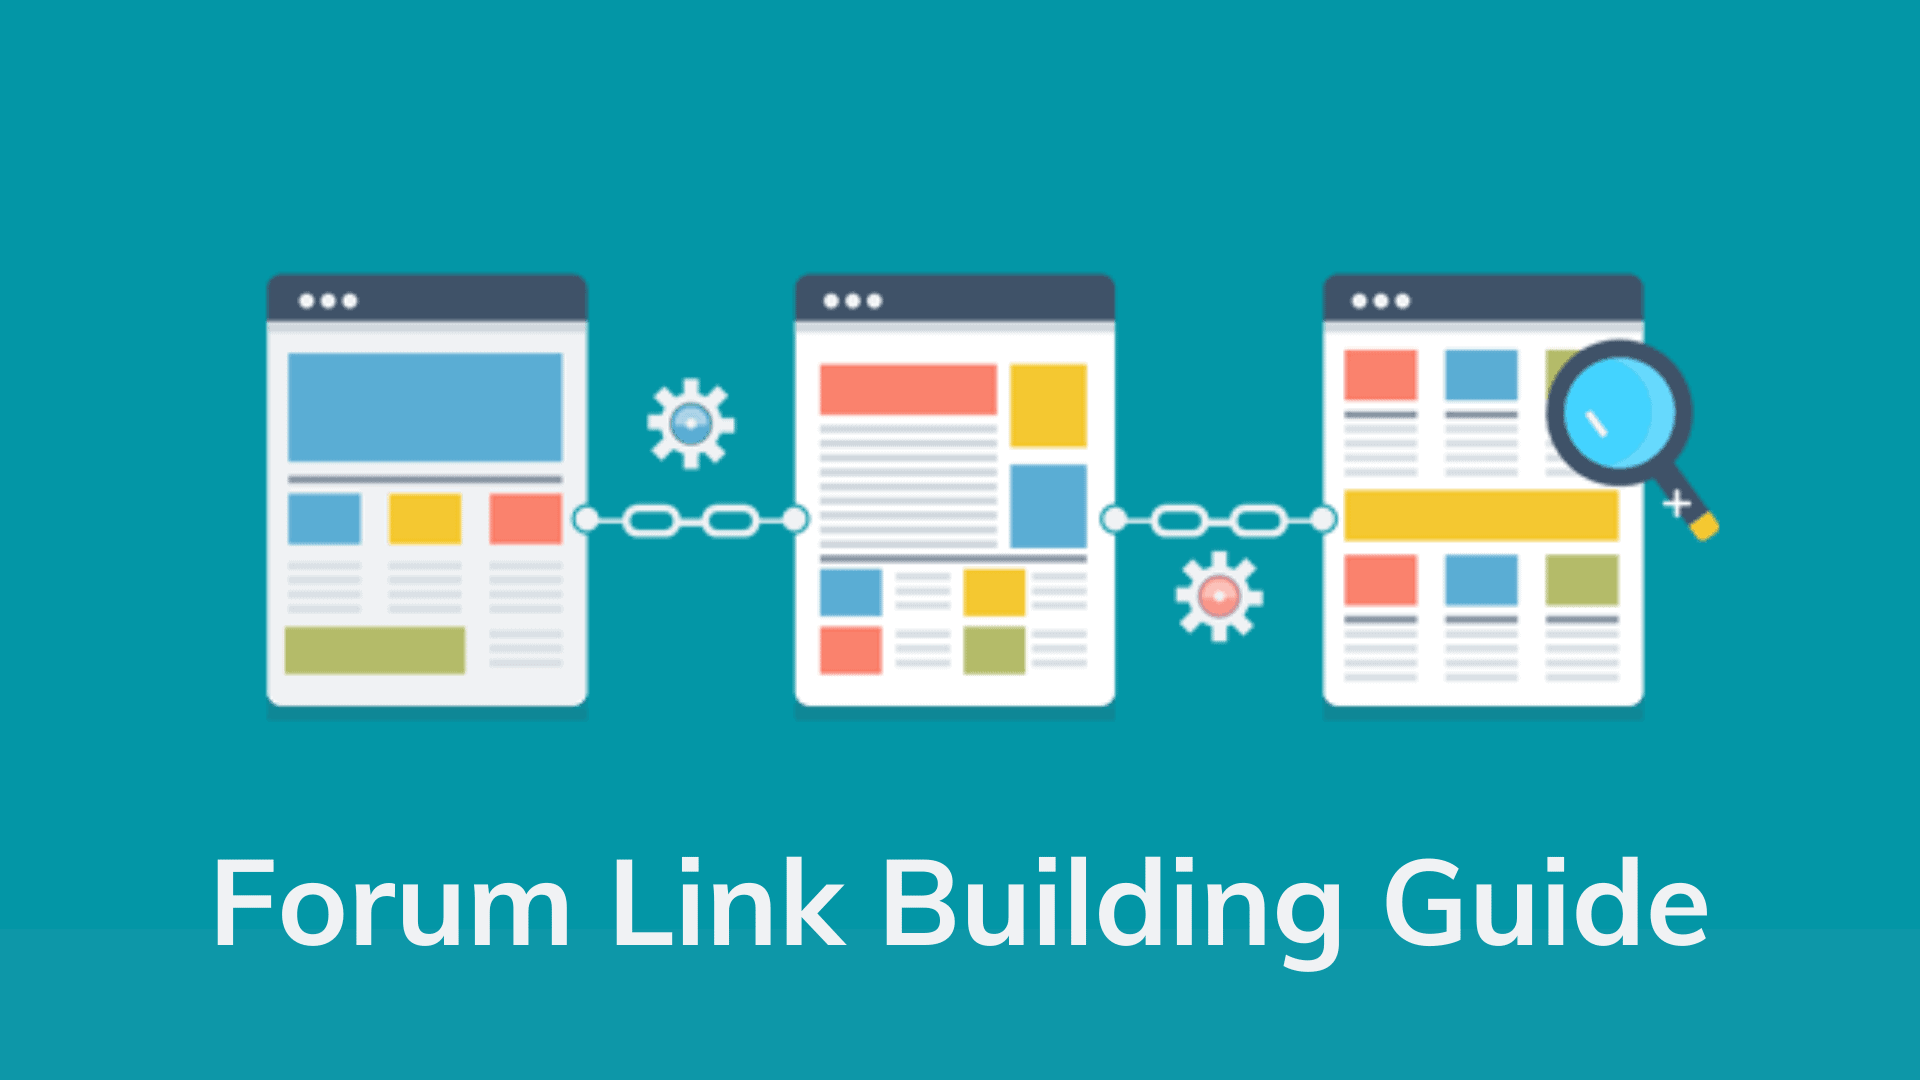 forum-link-building-guide